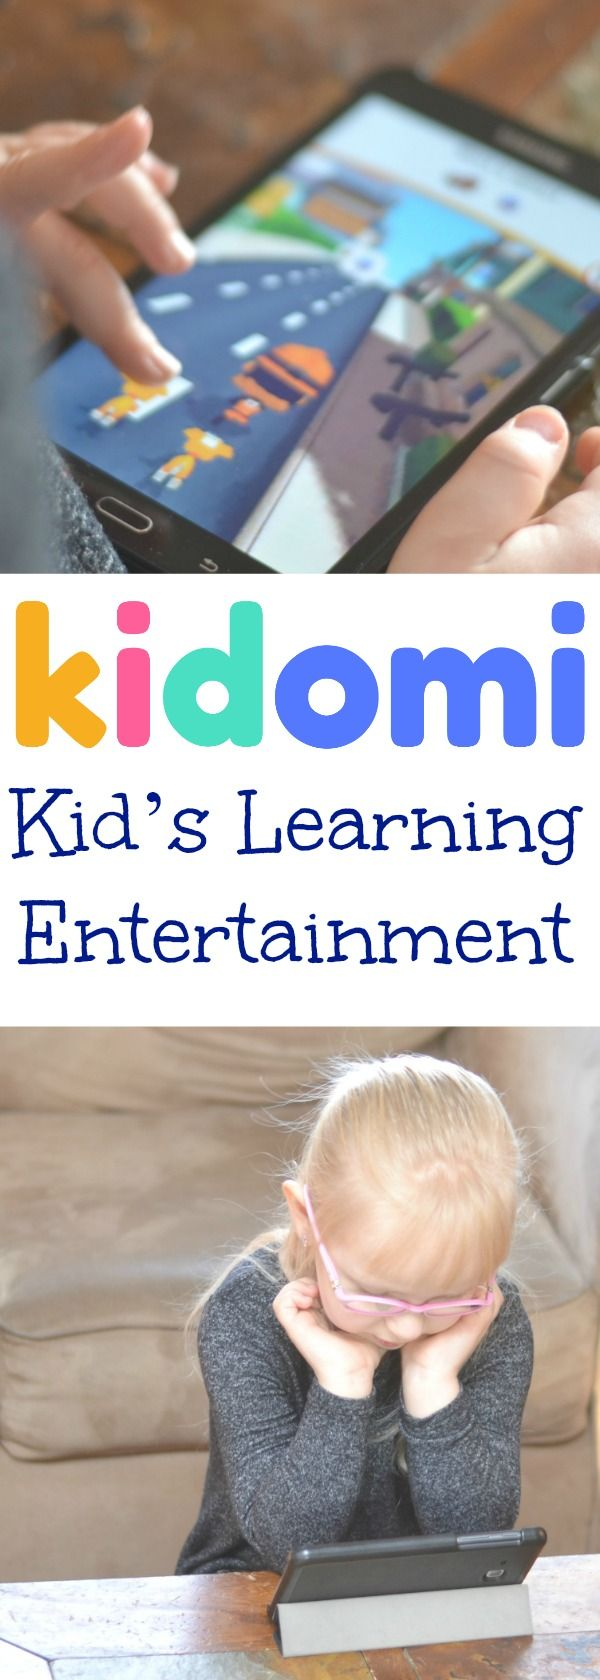 kidomi app, apps for kids, learning apps for kids, kidomi learning app, kidomi for tablets, screen time tips for kids, screen time apps for kids #KidomiApp #ad #technology #kids